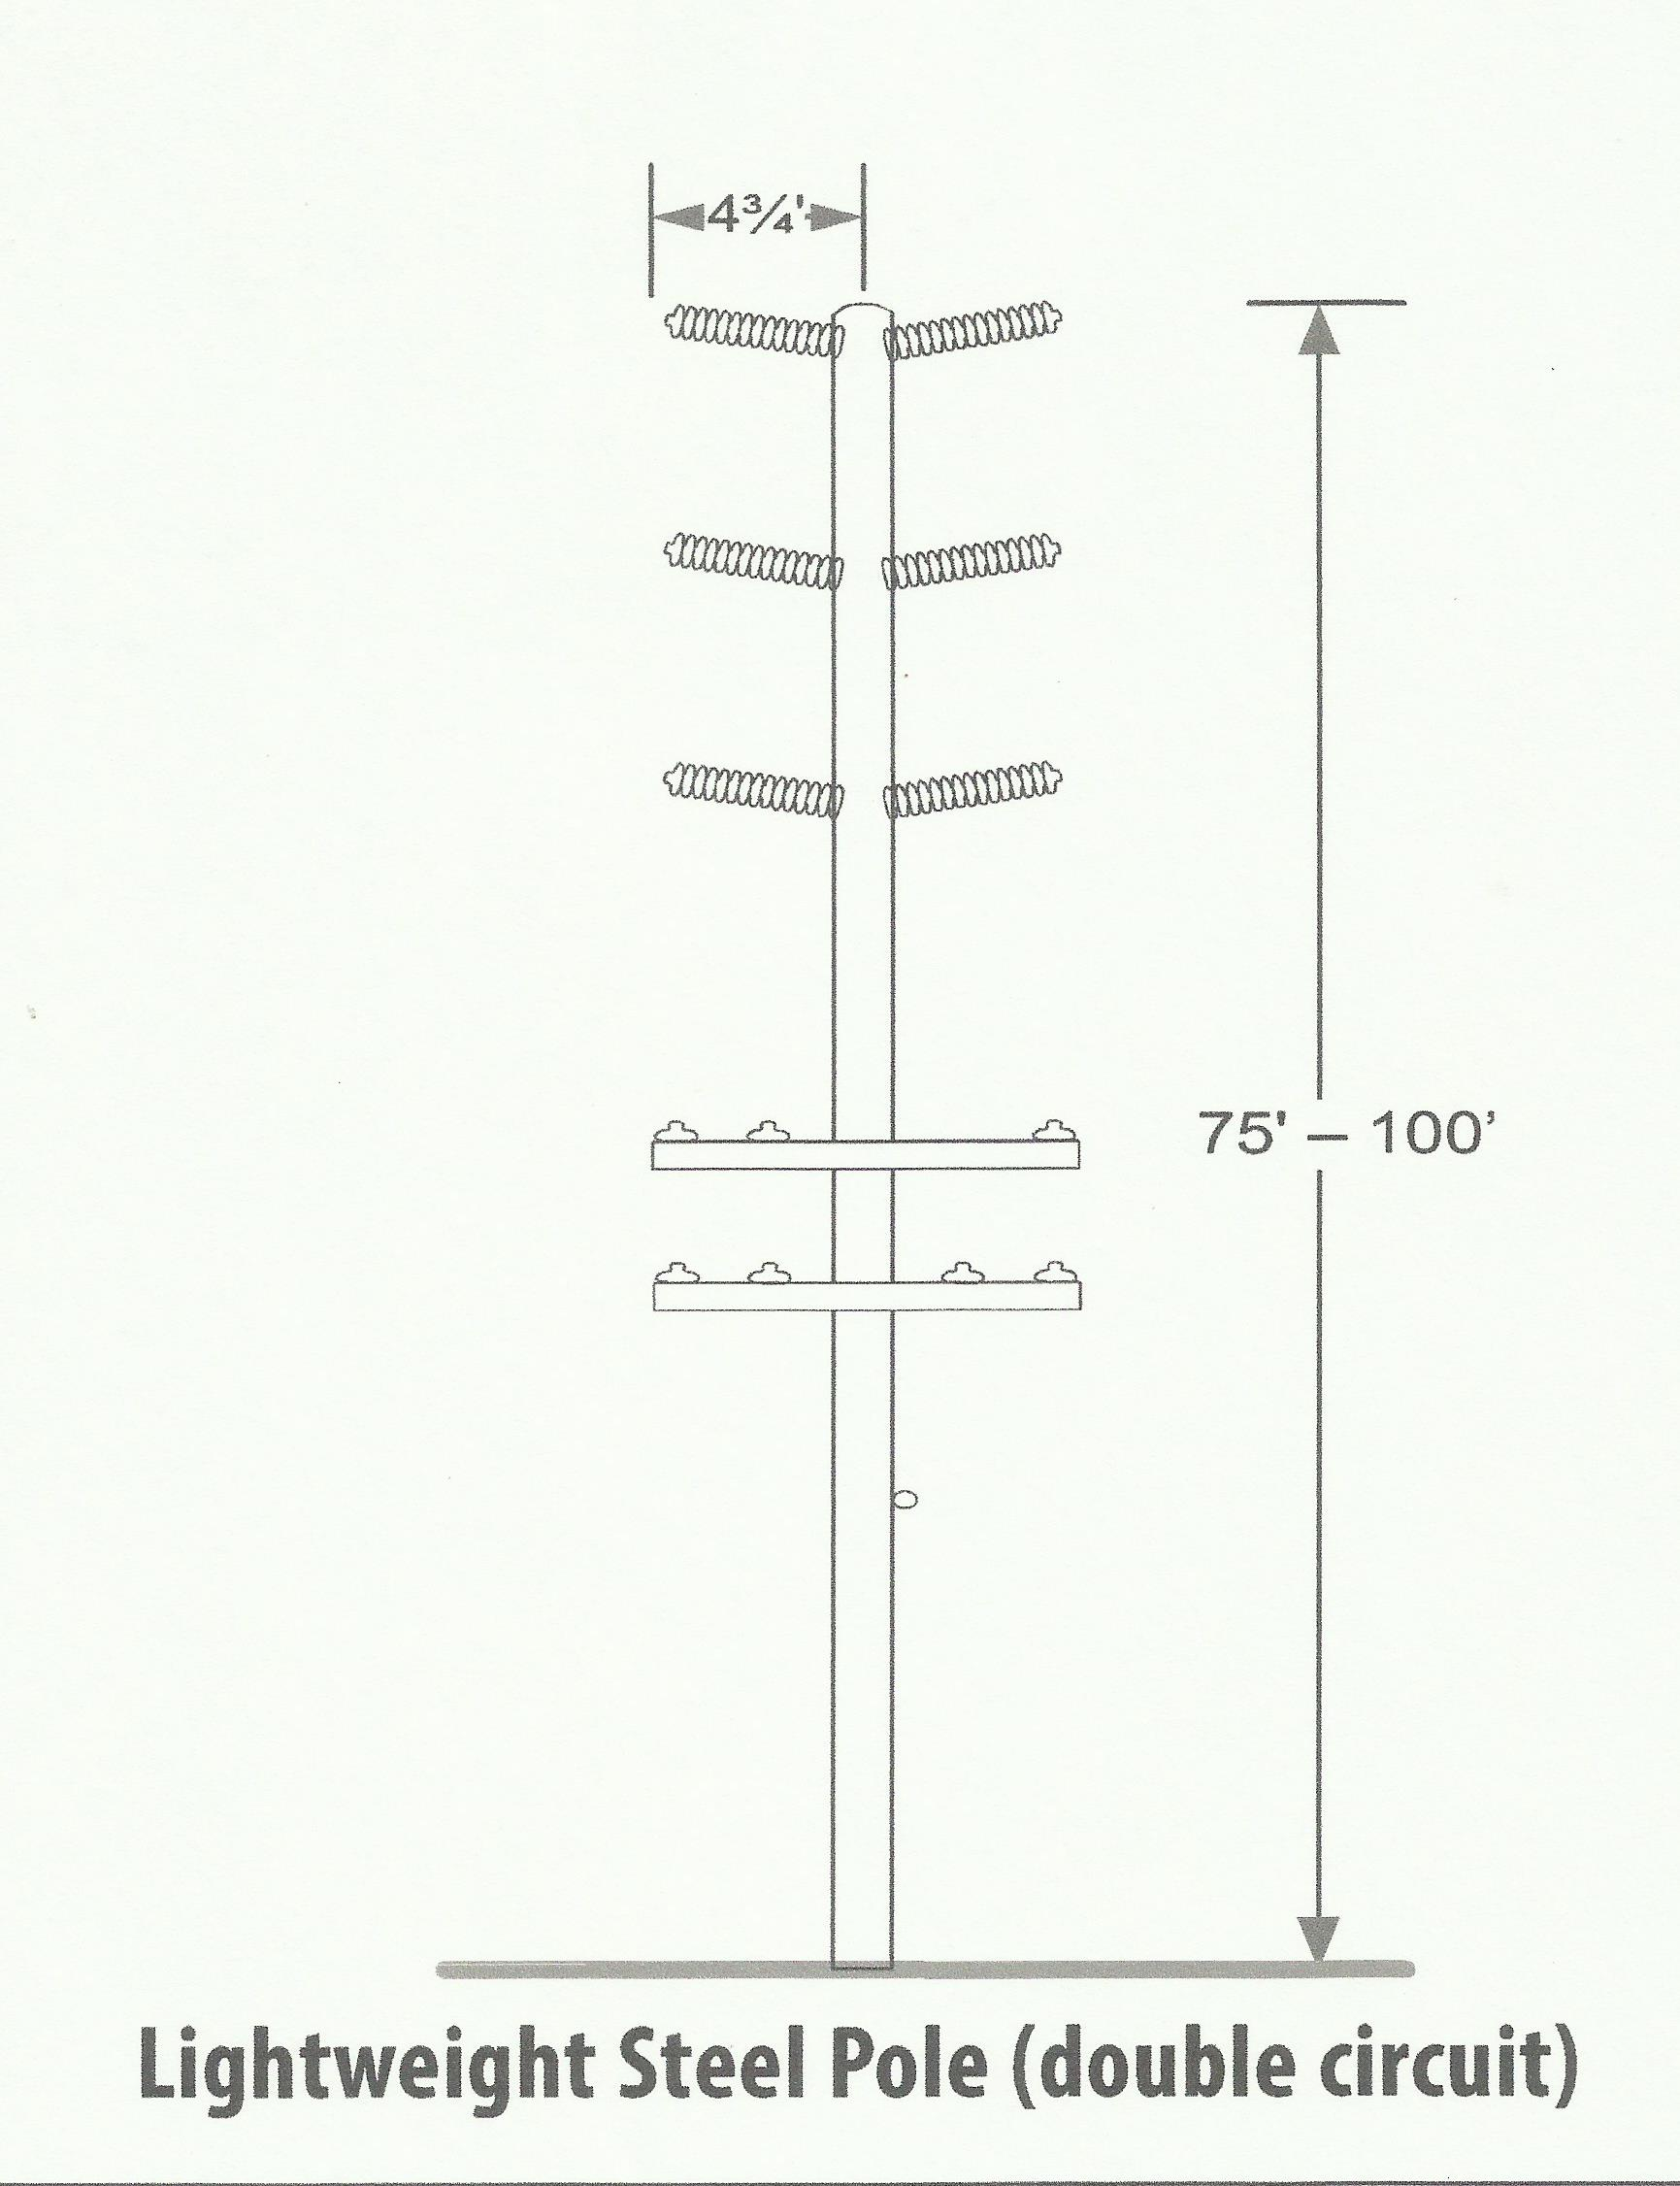 Drawing of Lightweight Steel Pole (LWS) to be used for project.